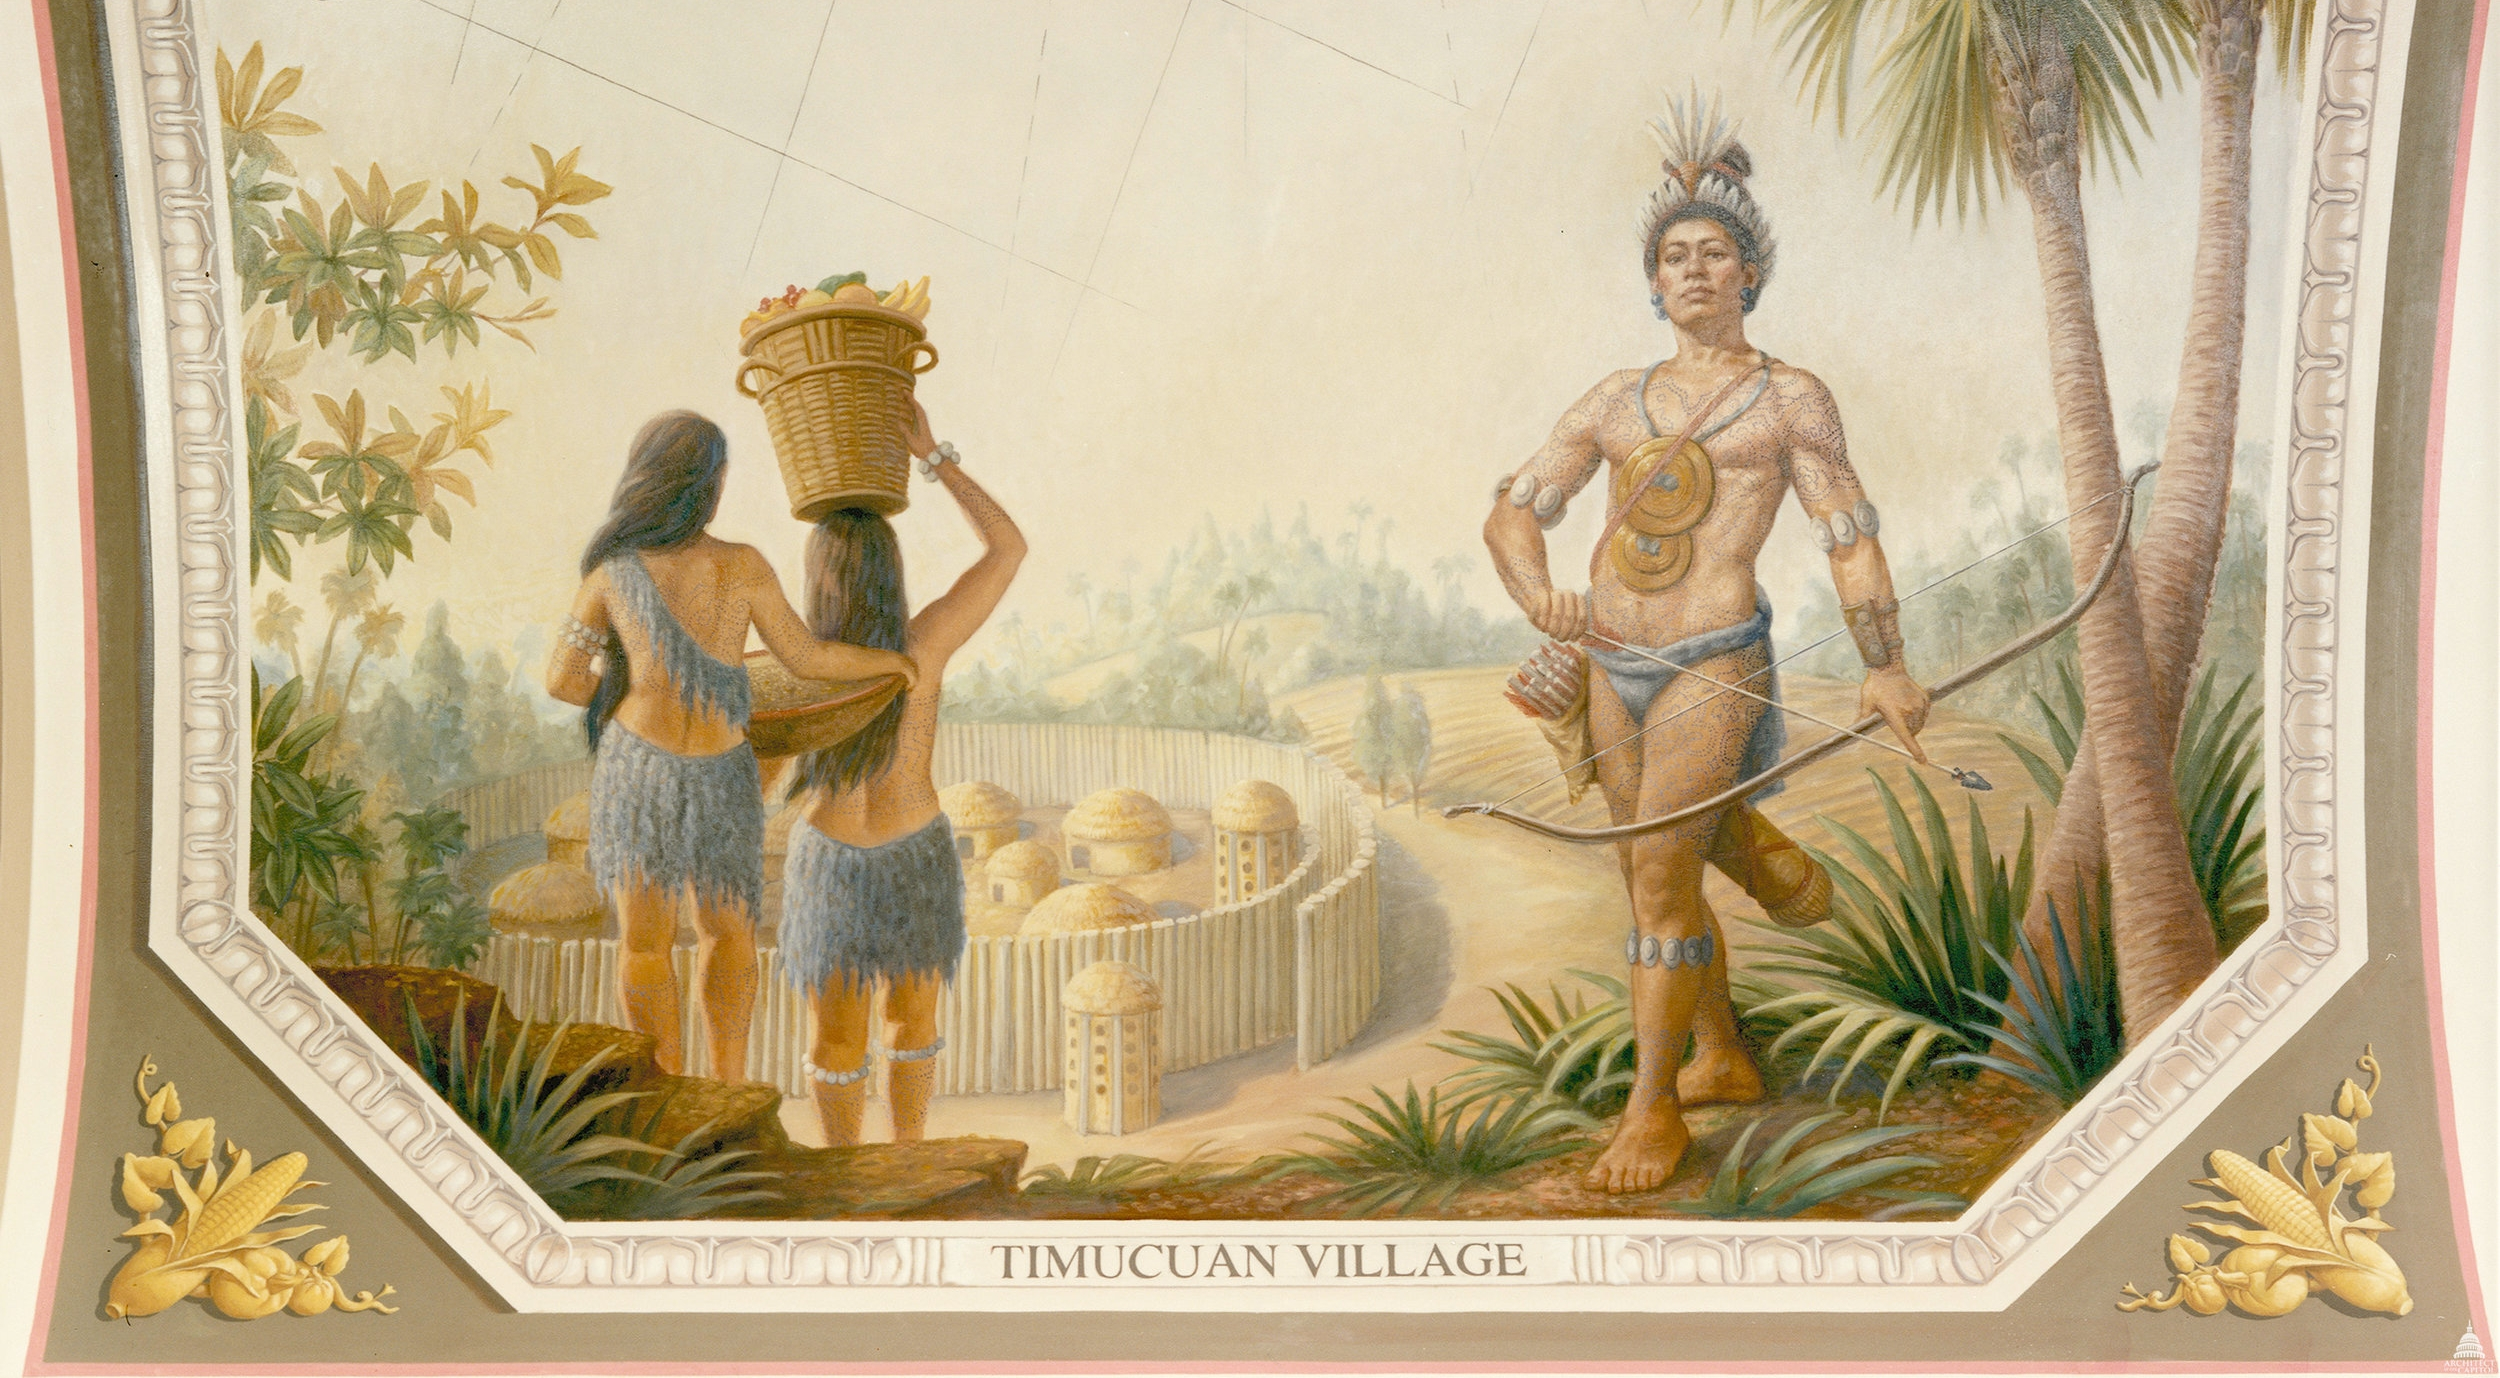 A Timucuan village as depicted by a painting in the United States Capitol. The Timucua people once lived on the barrier island where I grew up.